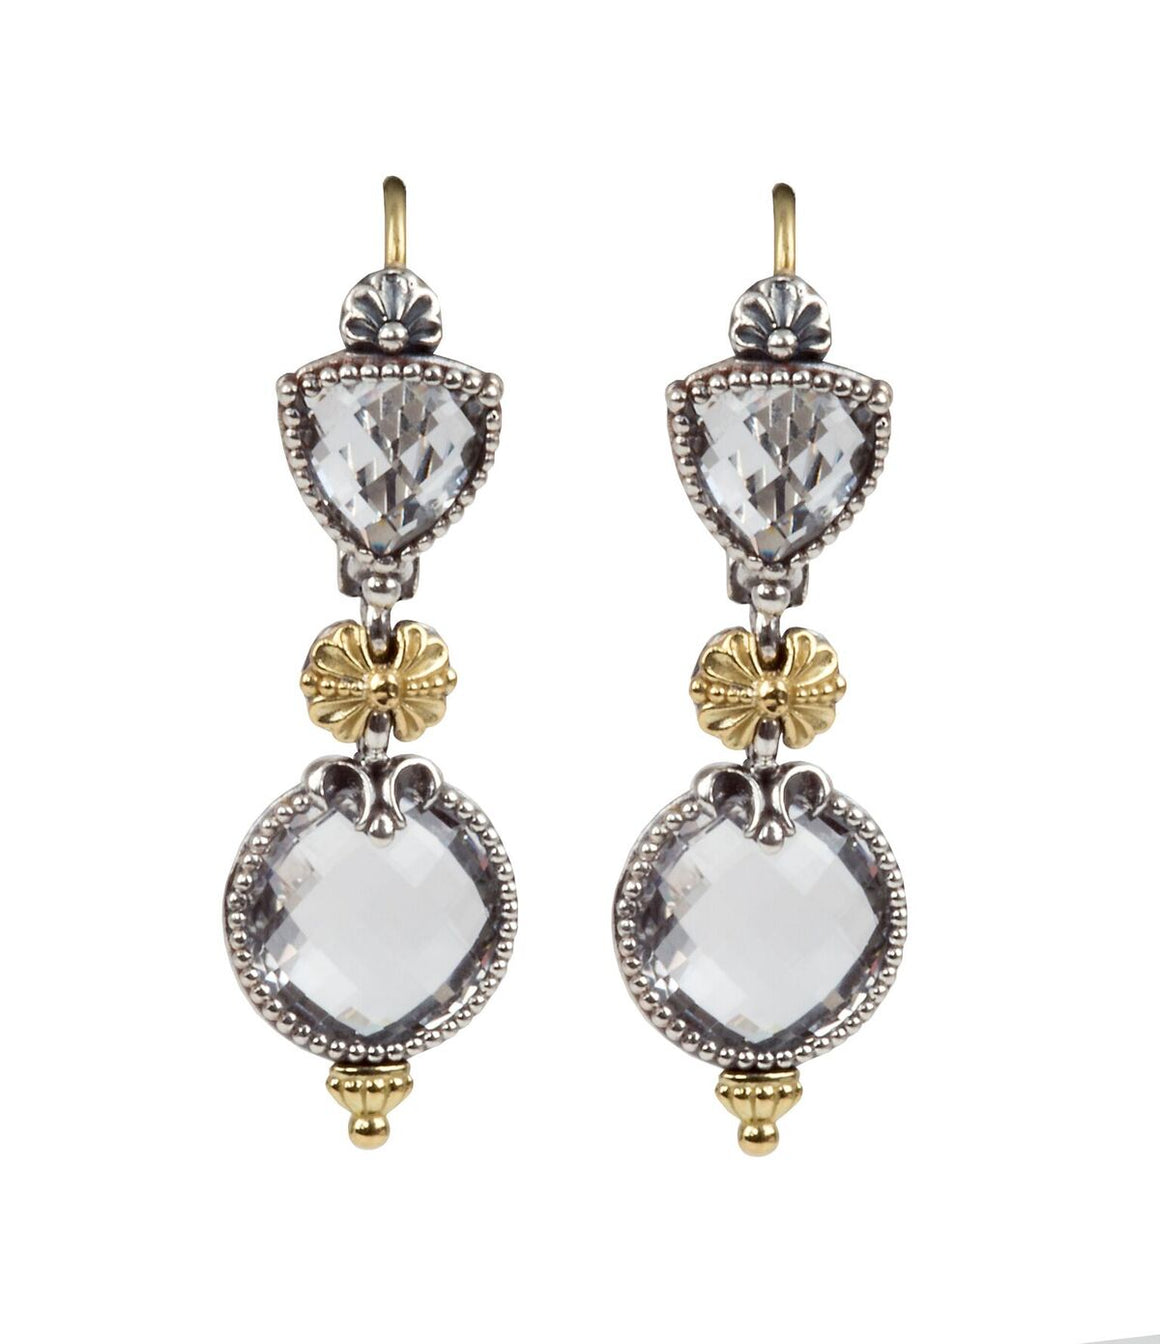 Sterling Silver & 18kt Gold Crystal Earrings